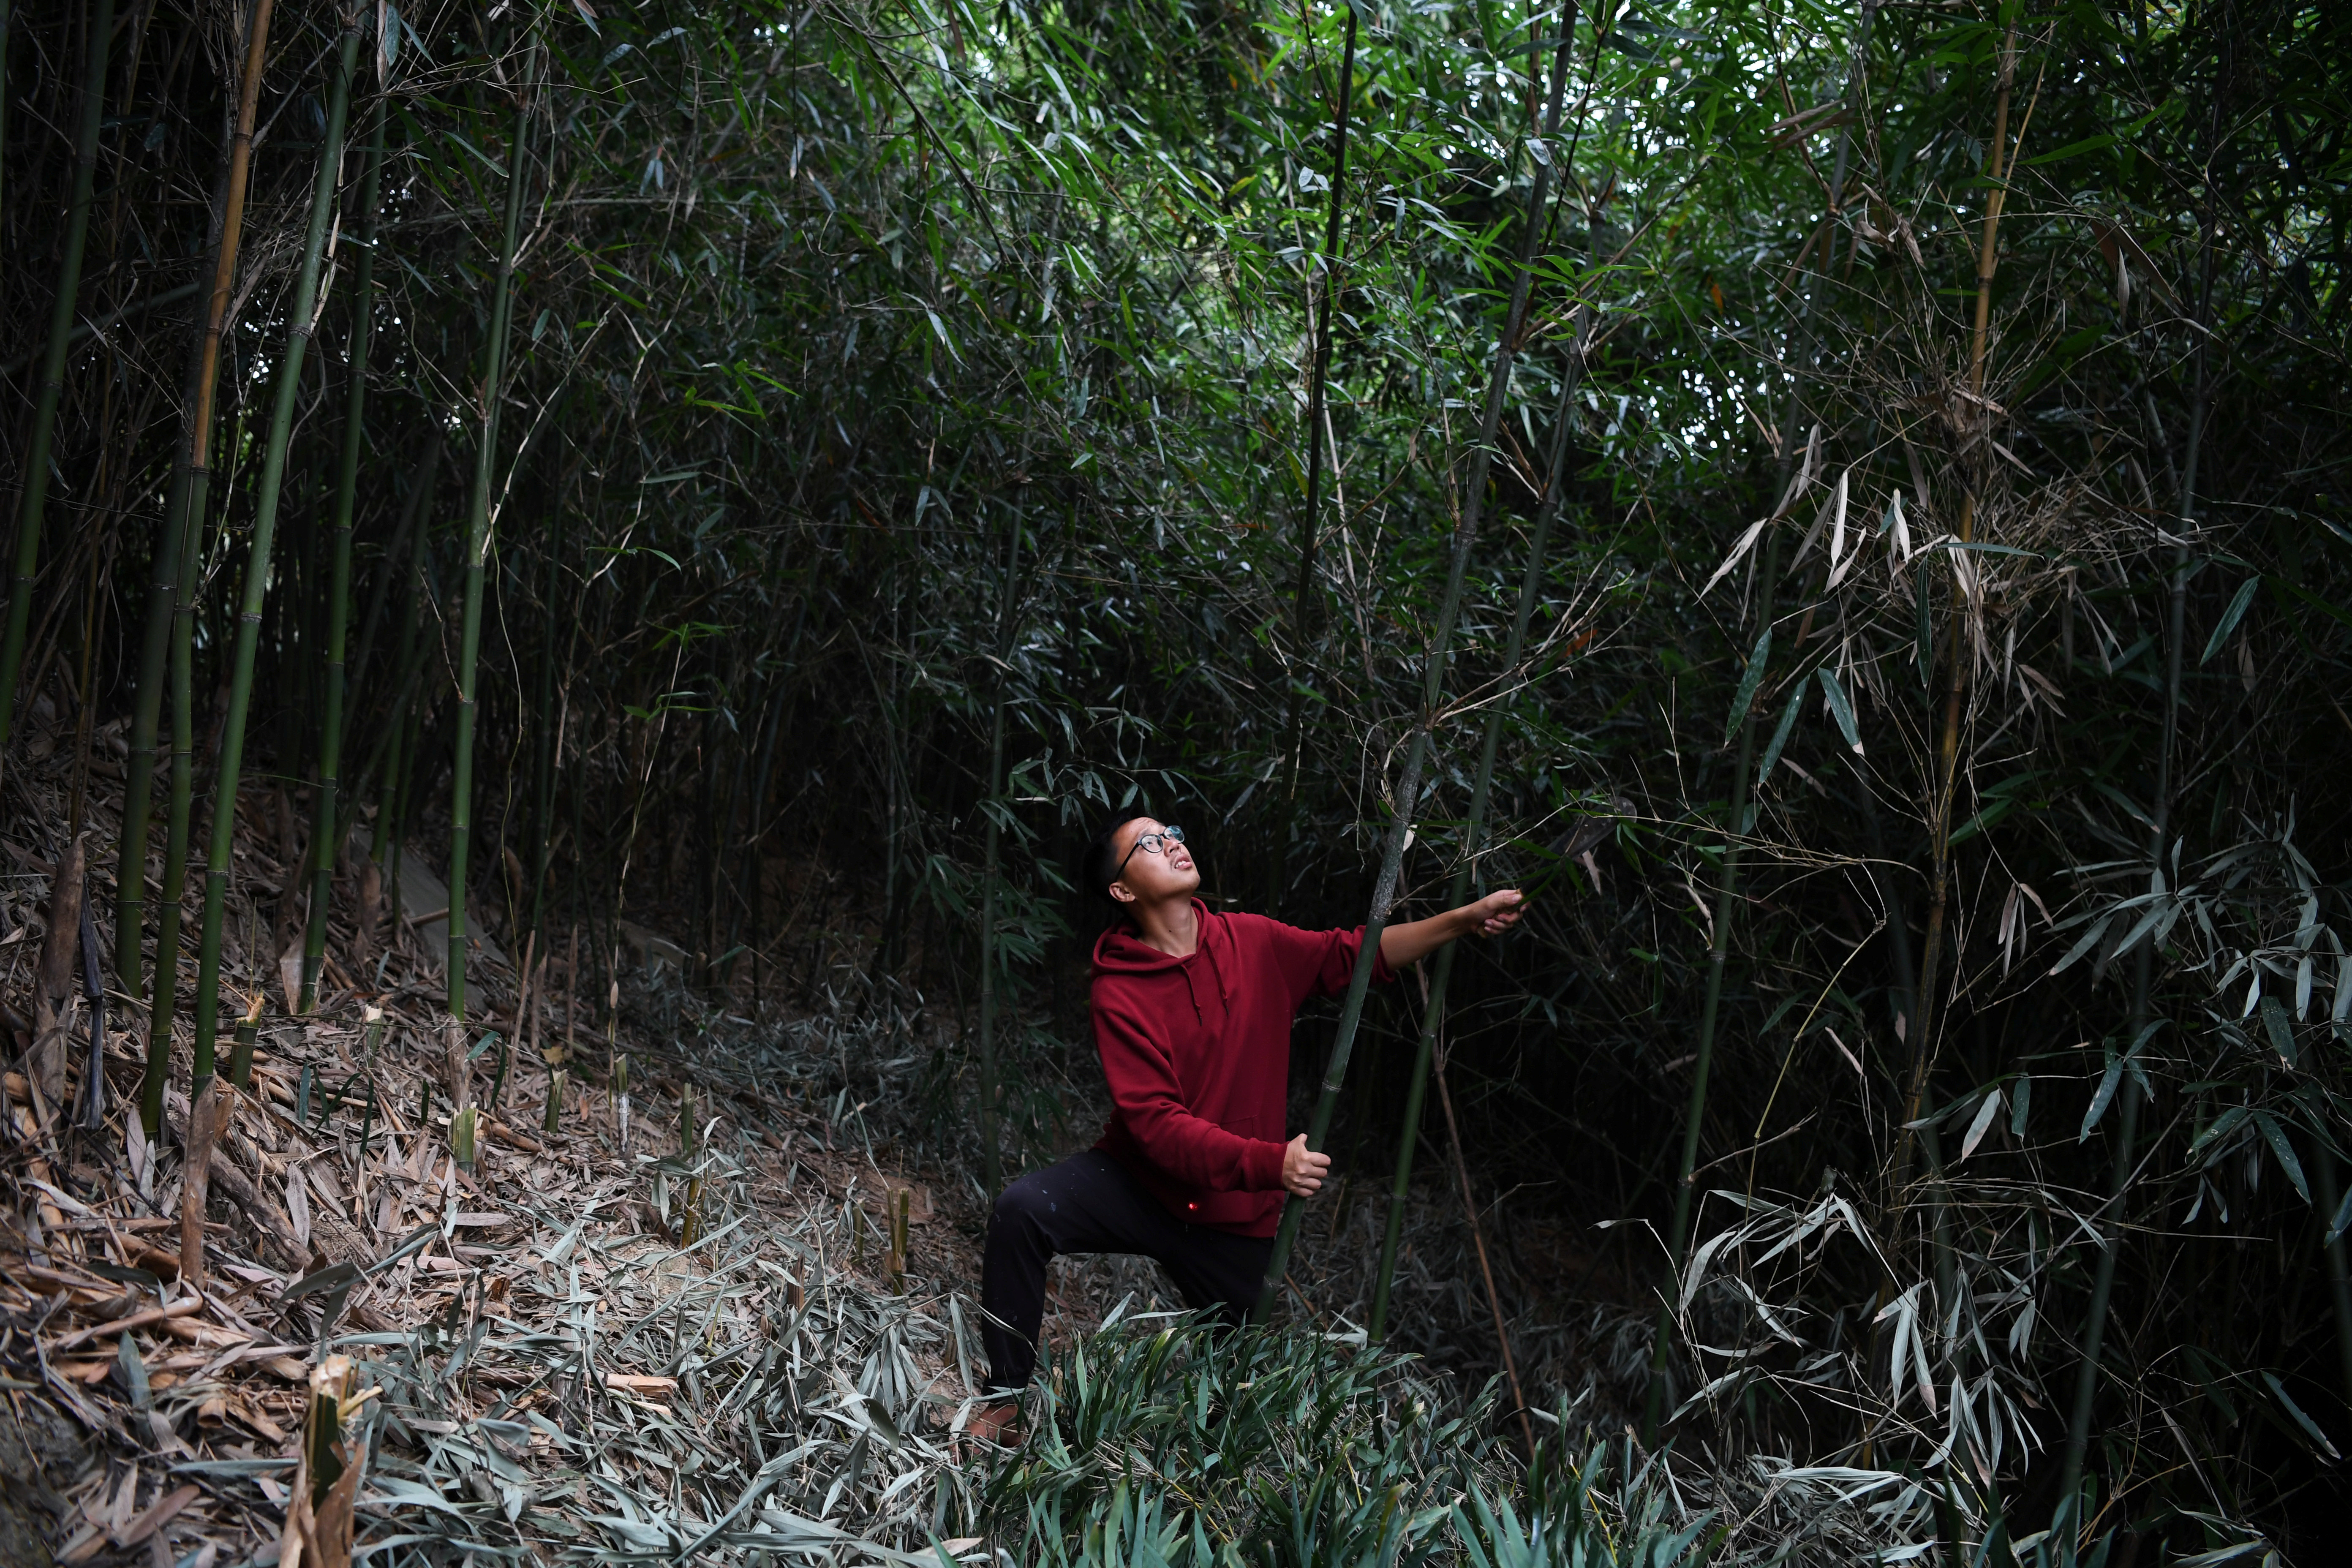 A bamboo stem is pulled down after being chopped off with a sickle in Guanzhong village, Fuzhou, Fujian province, China